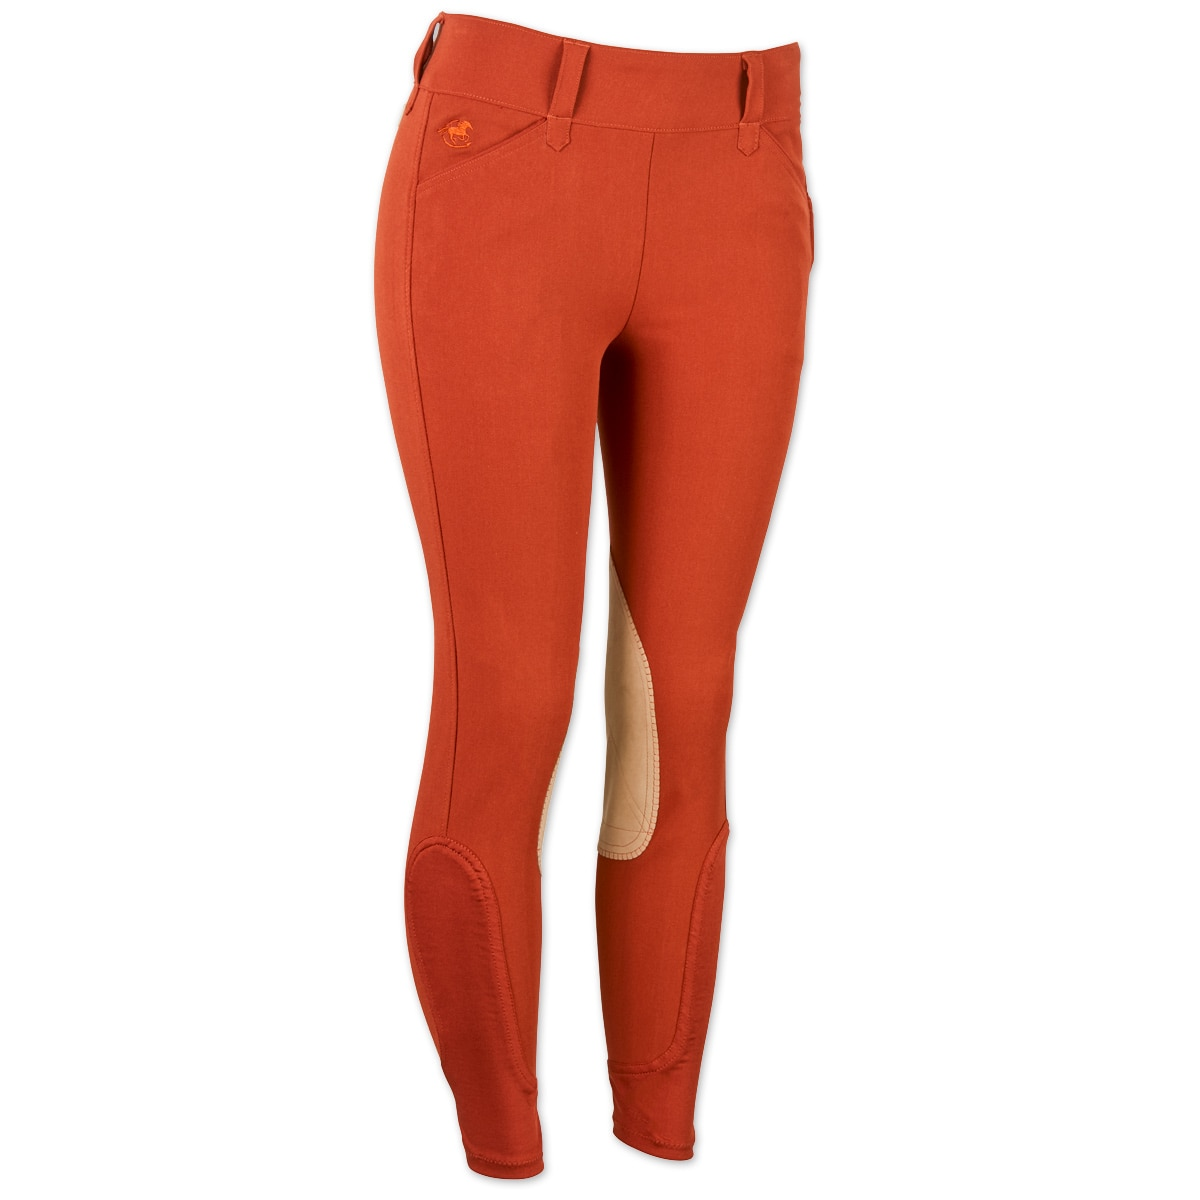 Piper Breeches by SmartPak - Tan Knee Patch Side Zip - Clearance!